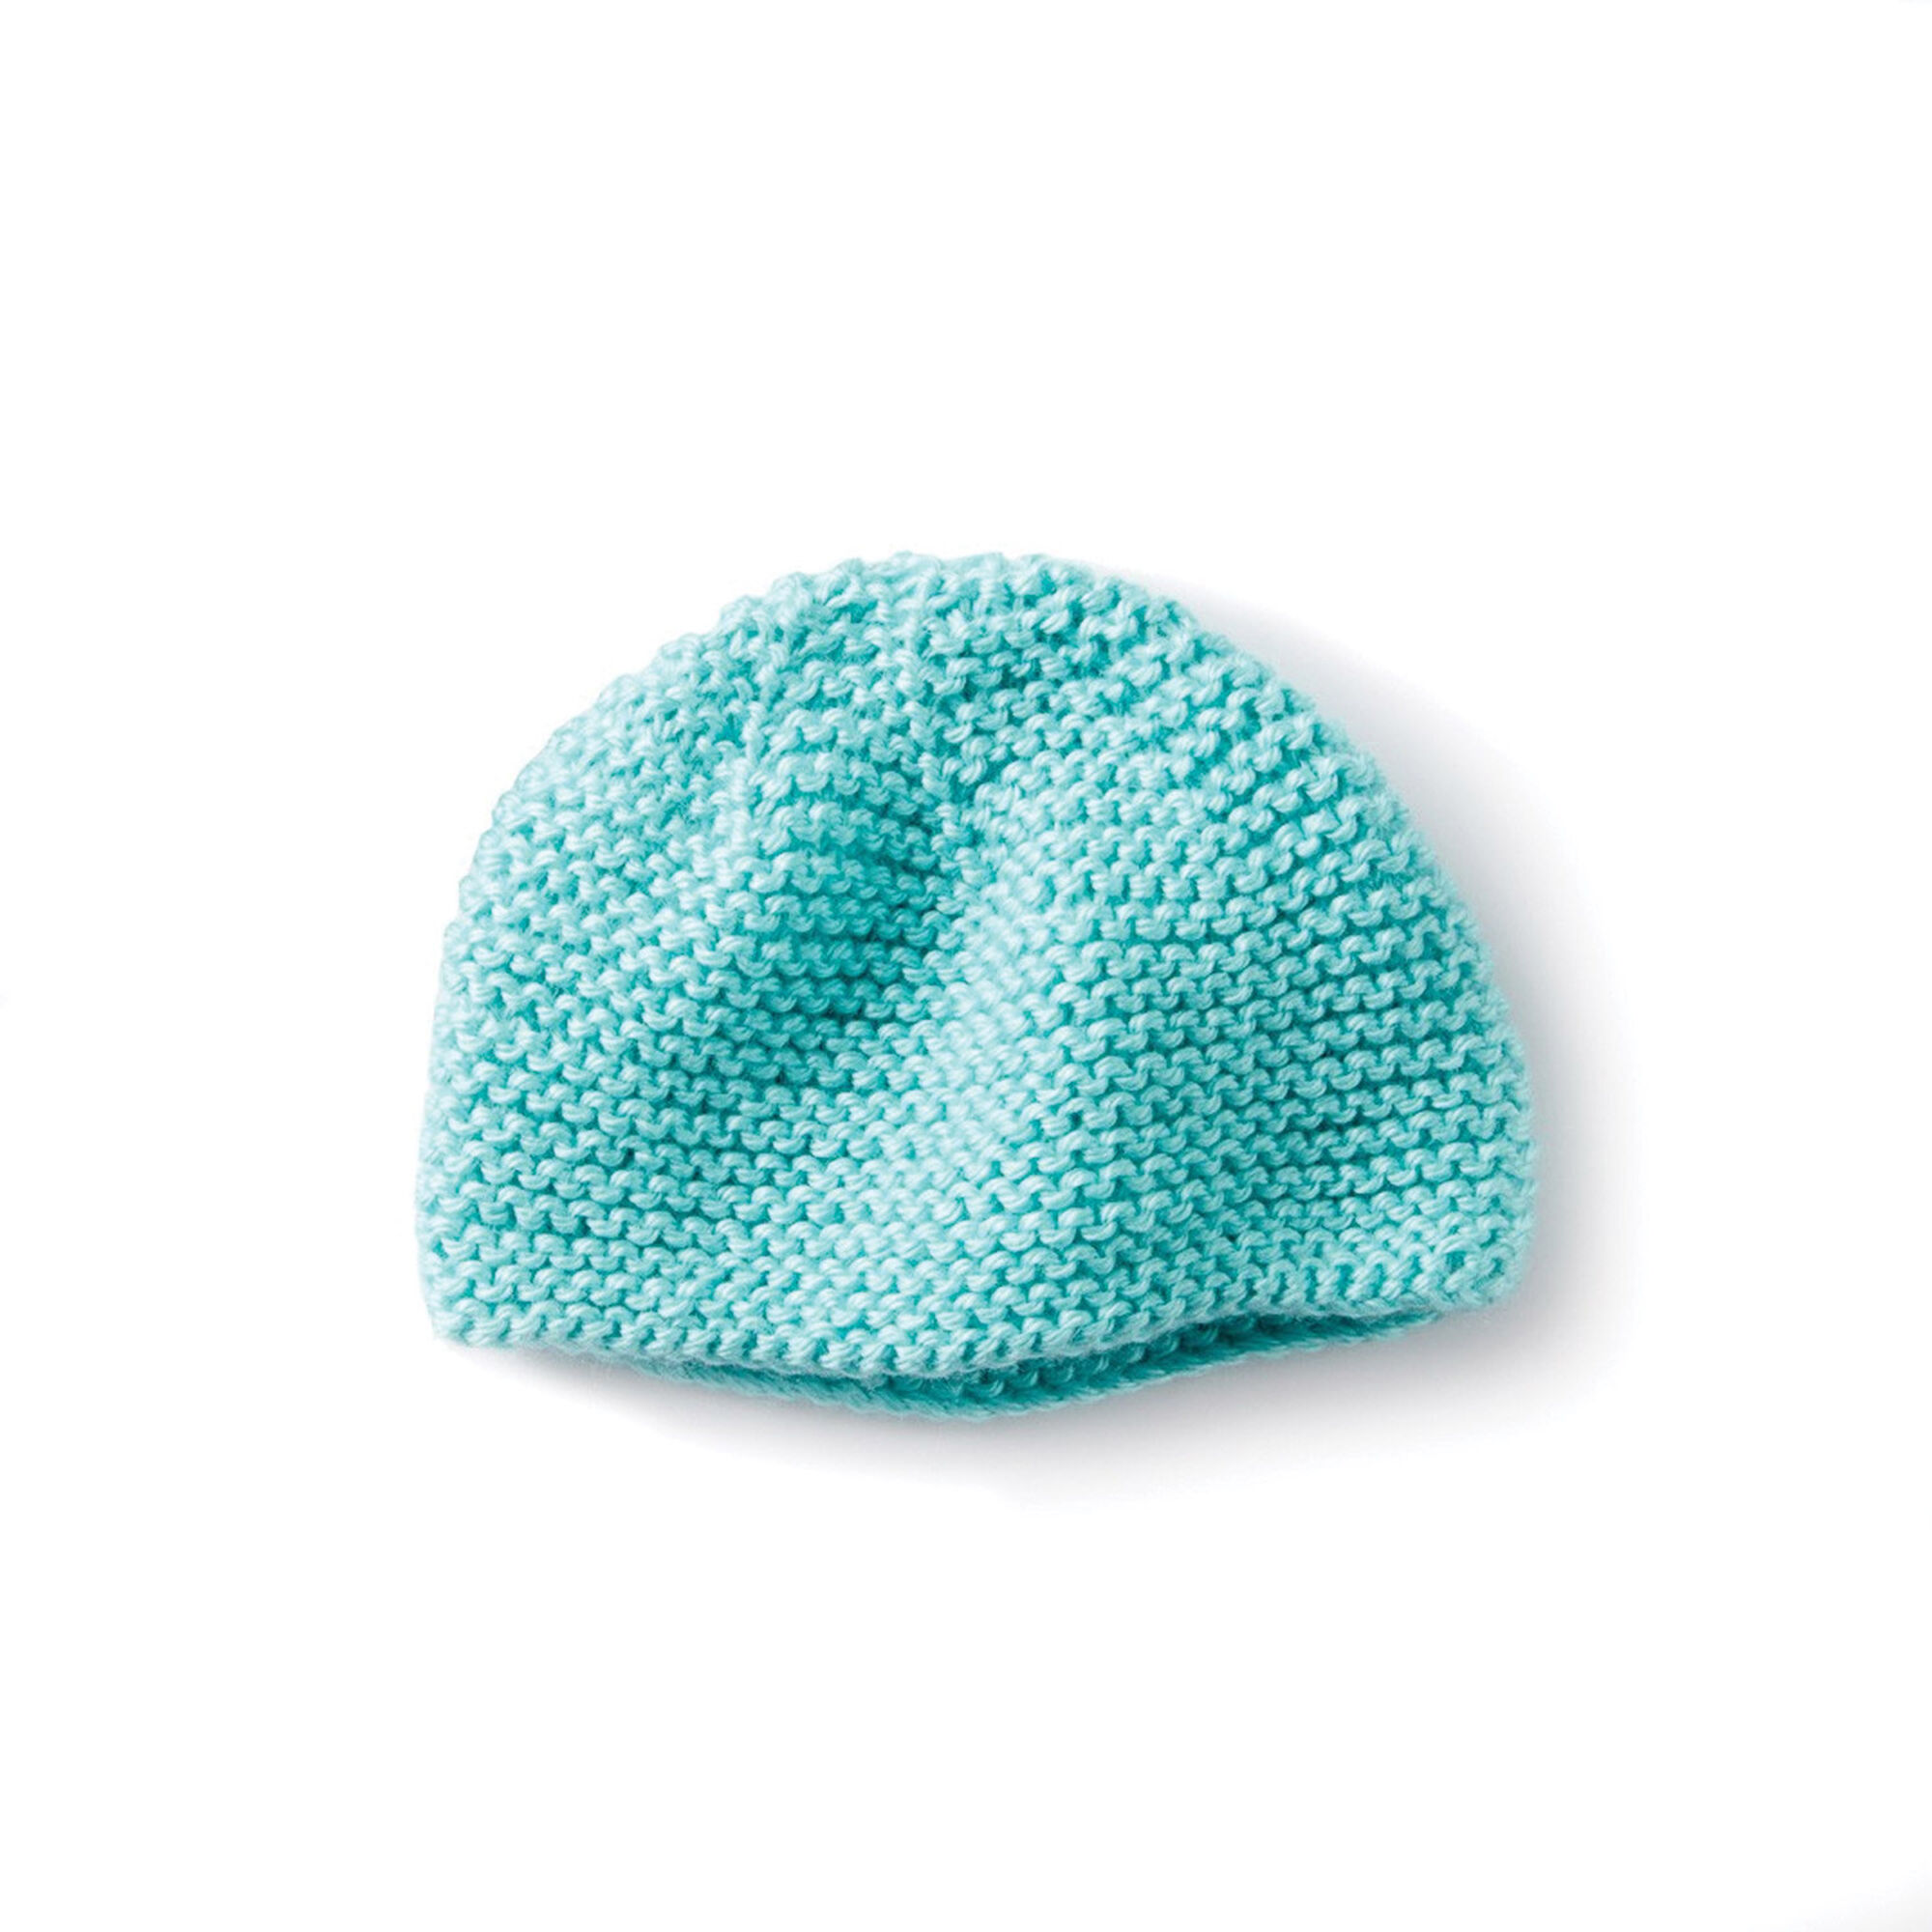 Caron Mini Garter Stitch Cap | Yarnspirations